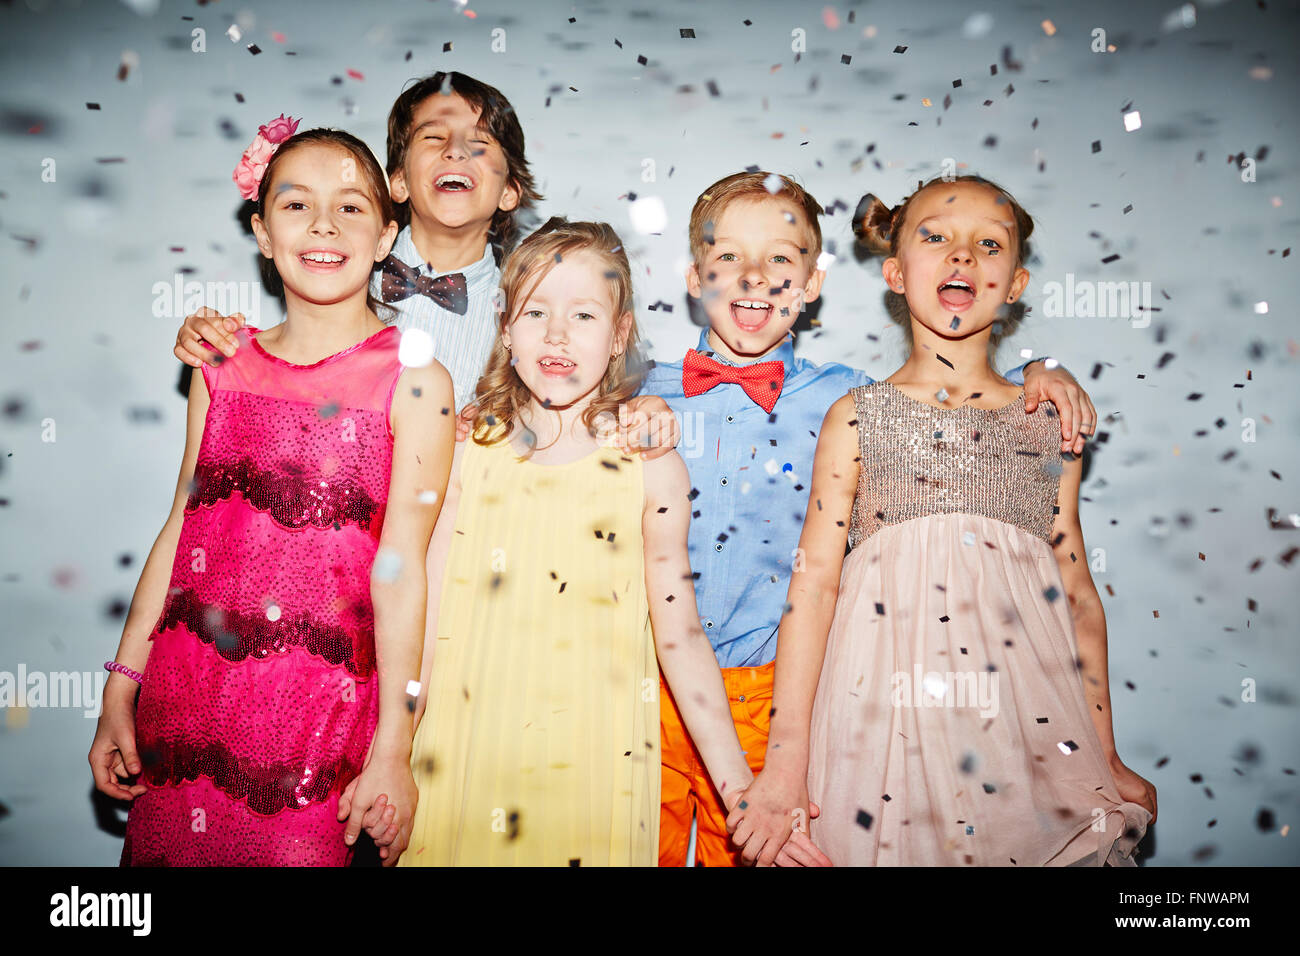 Group of happy children standing under falling confetti - Stock Image